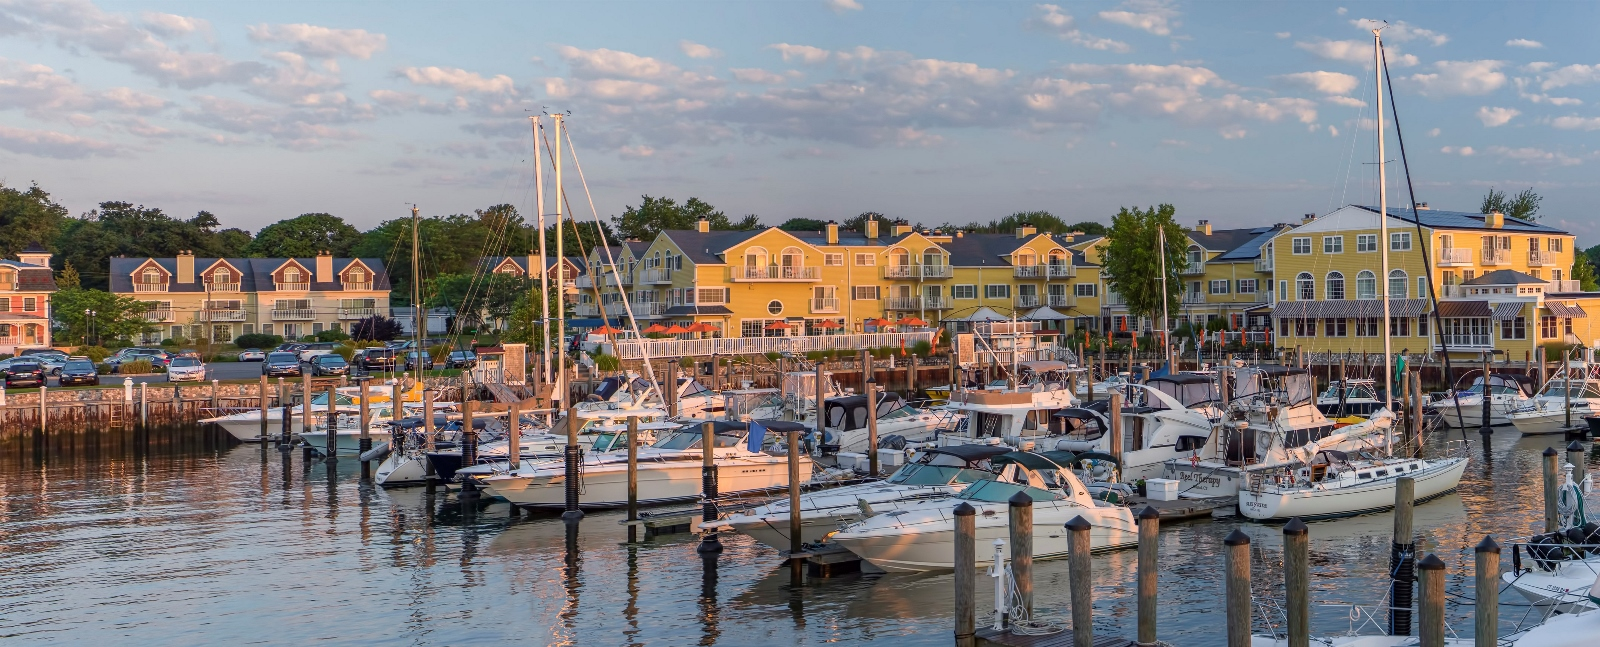 Saybrook Point - Marina Image